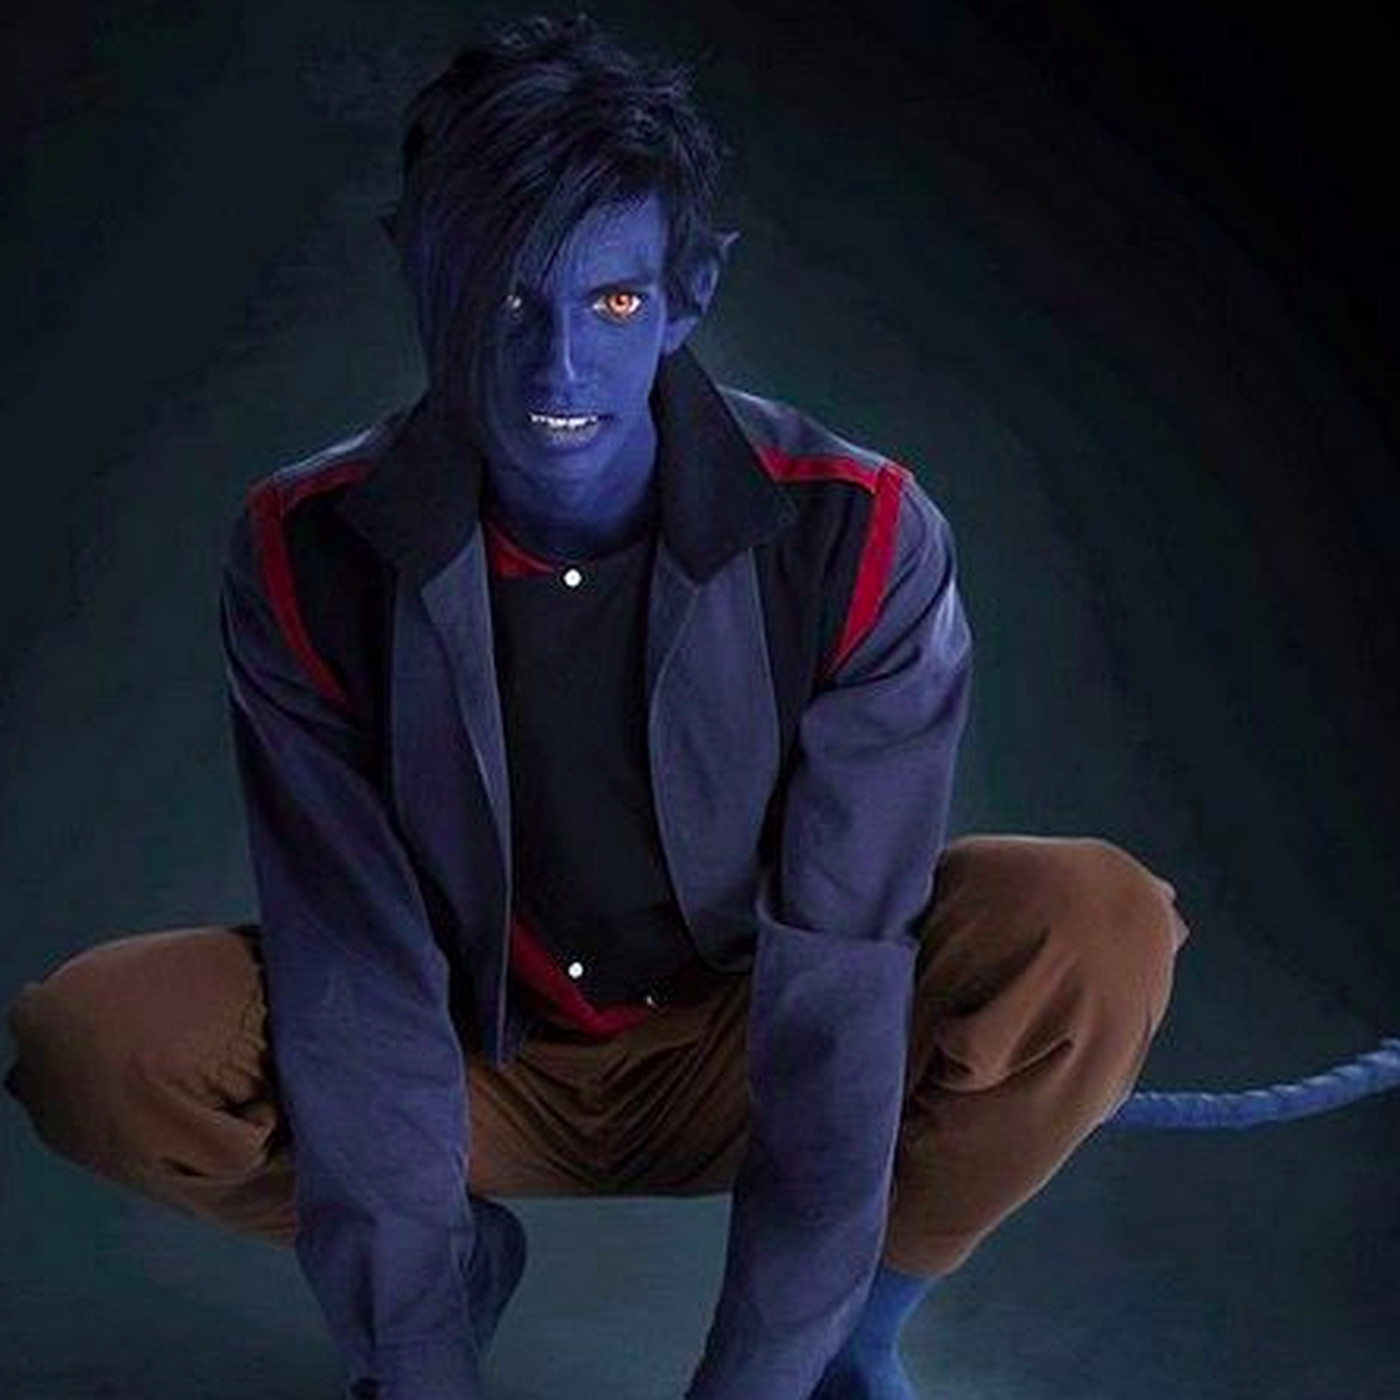 Here S Your First Look At Nightcrawler From X Men Apocalypse Vox